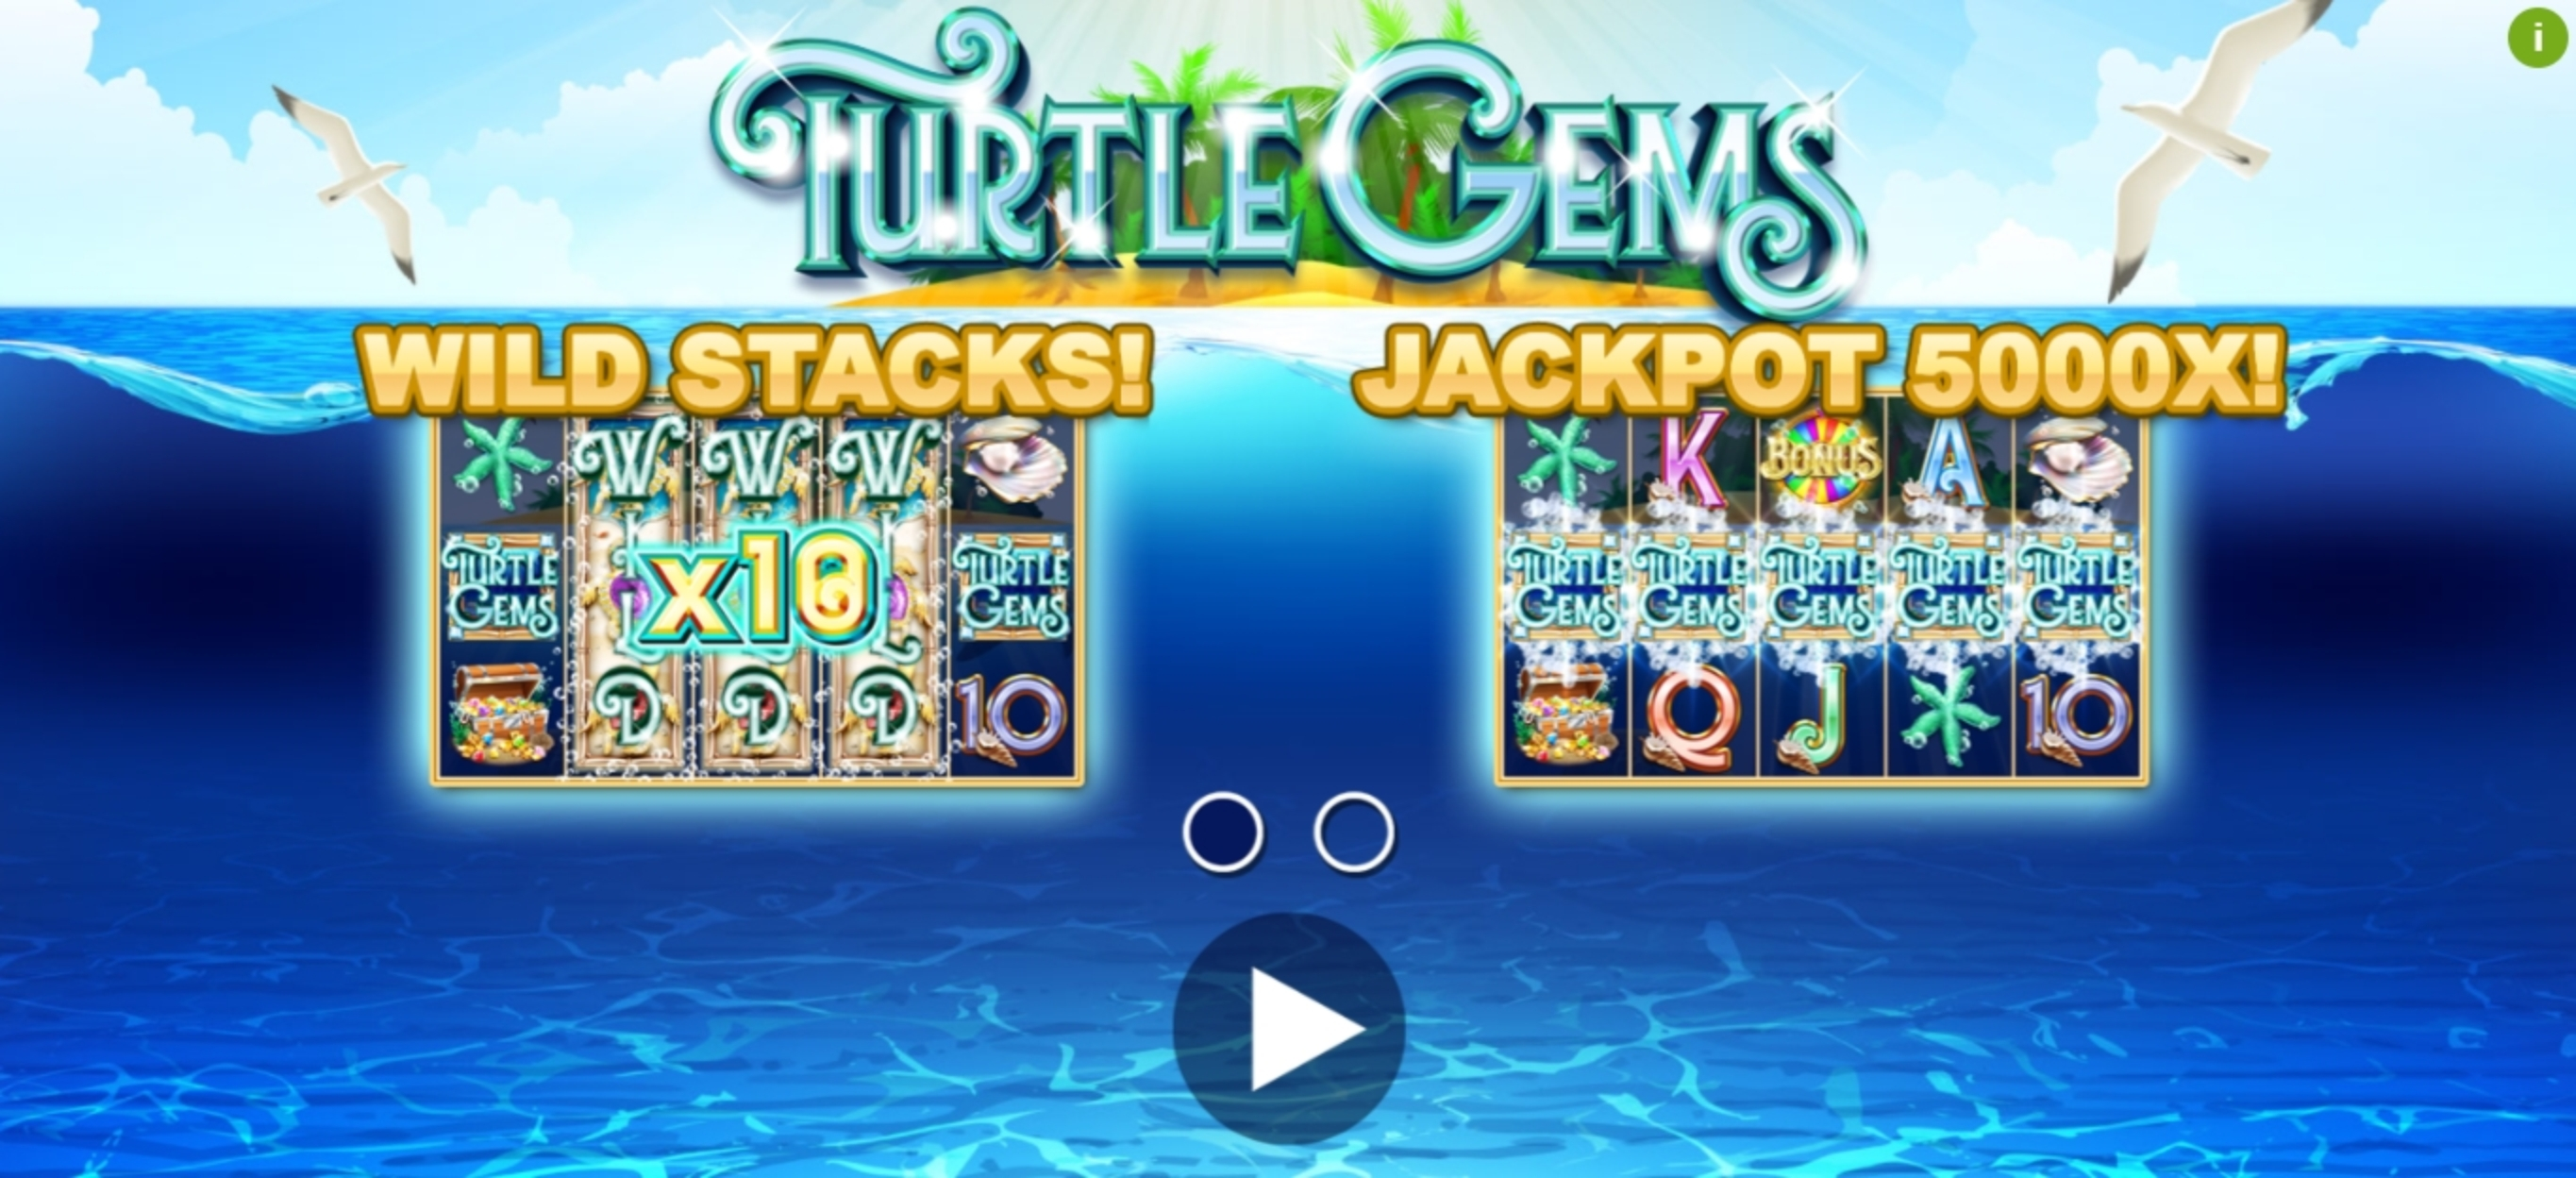 Play Turtle Gems Free Casino Slot Game by Playlogics